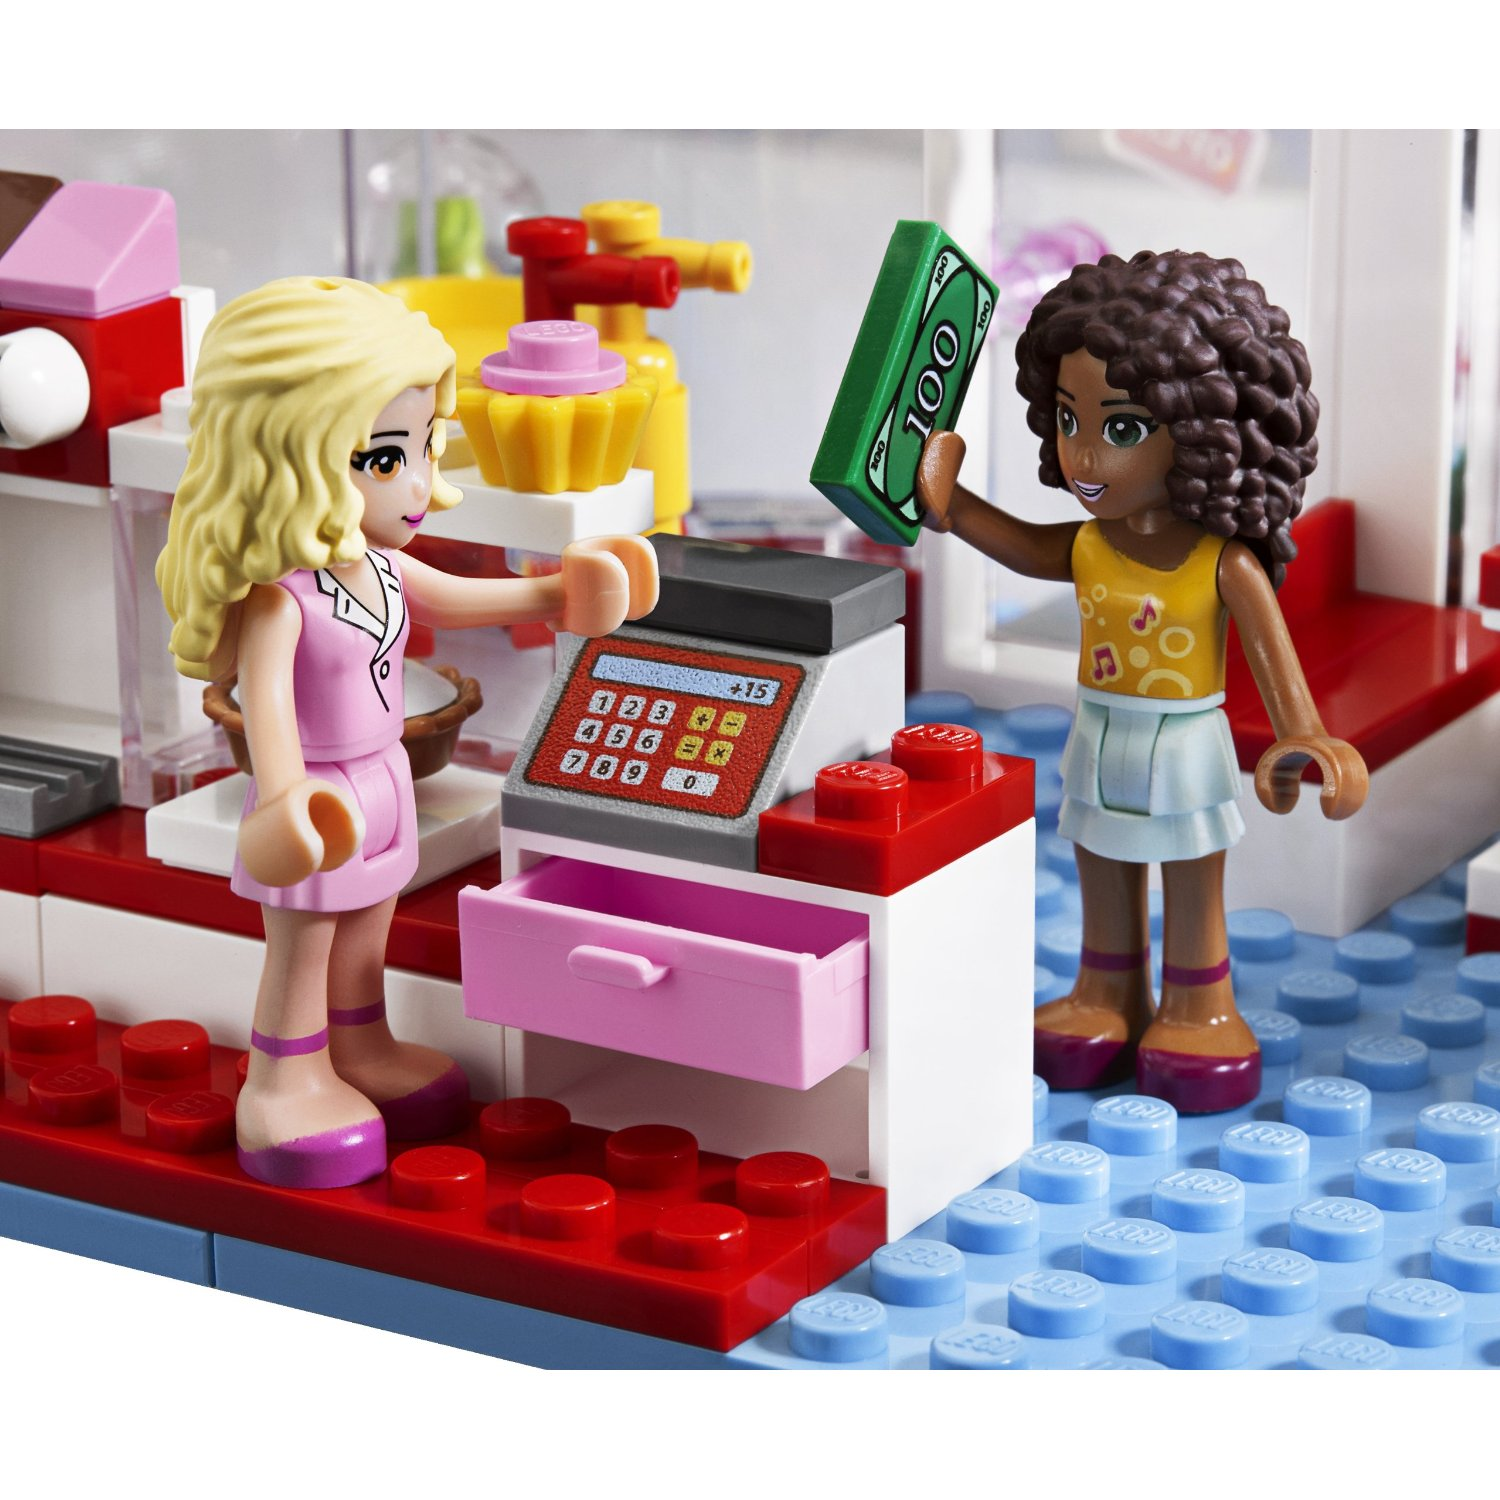 41008 Heartlake Zwembad Lego Friends Olivia39s Cupcake Cafe Set In 2019 Products